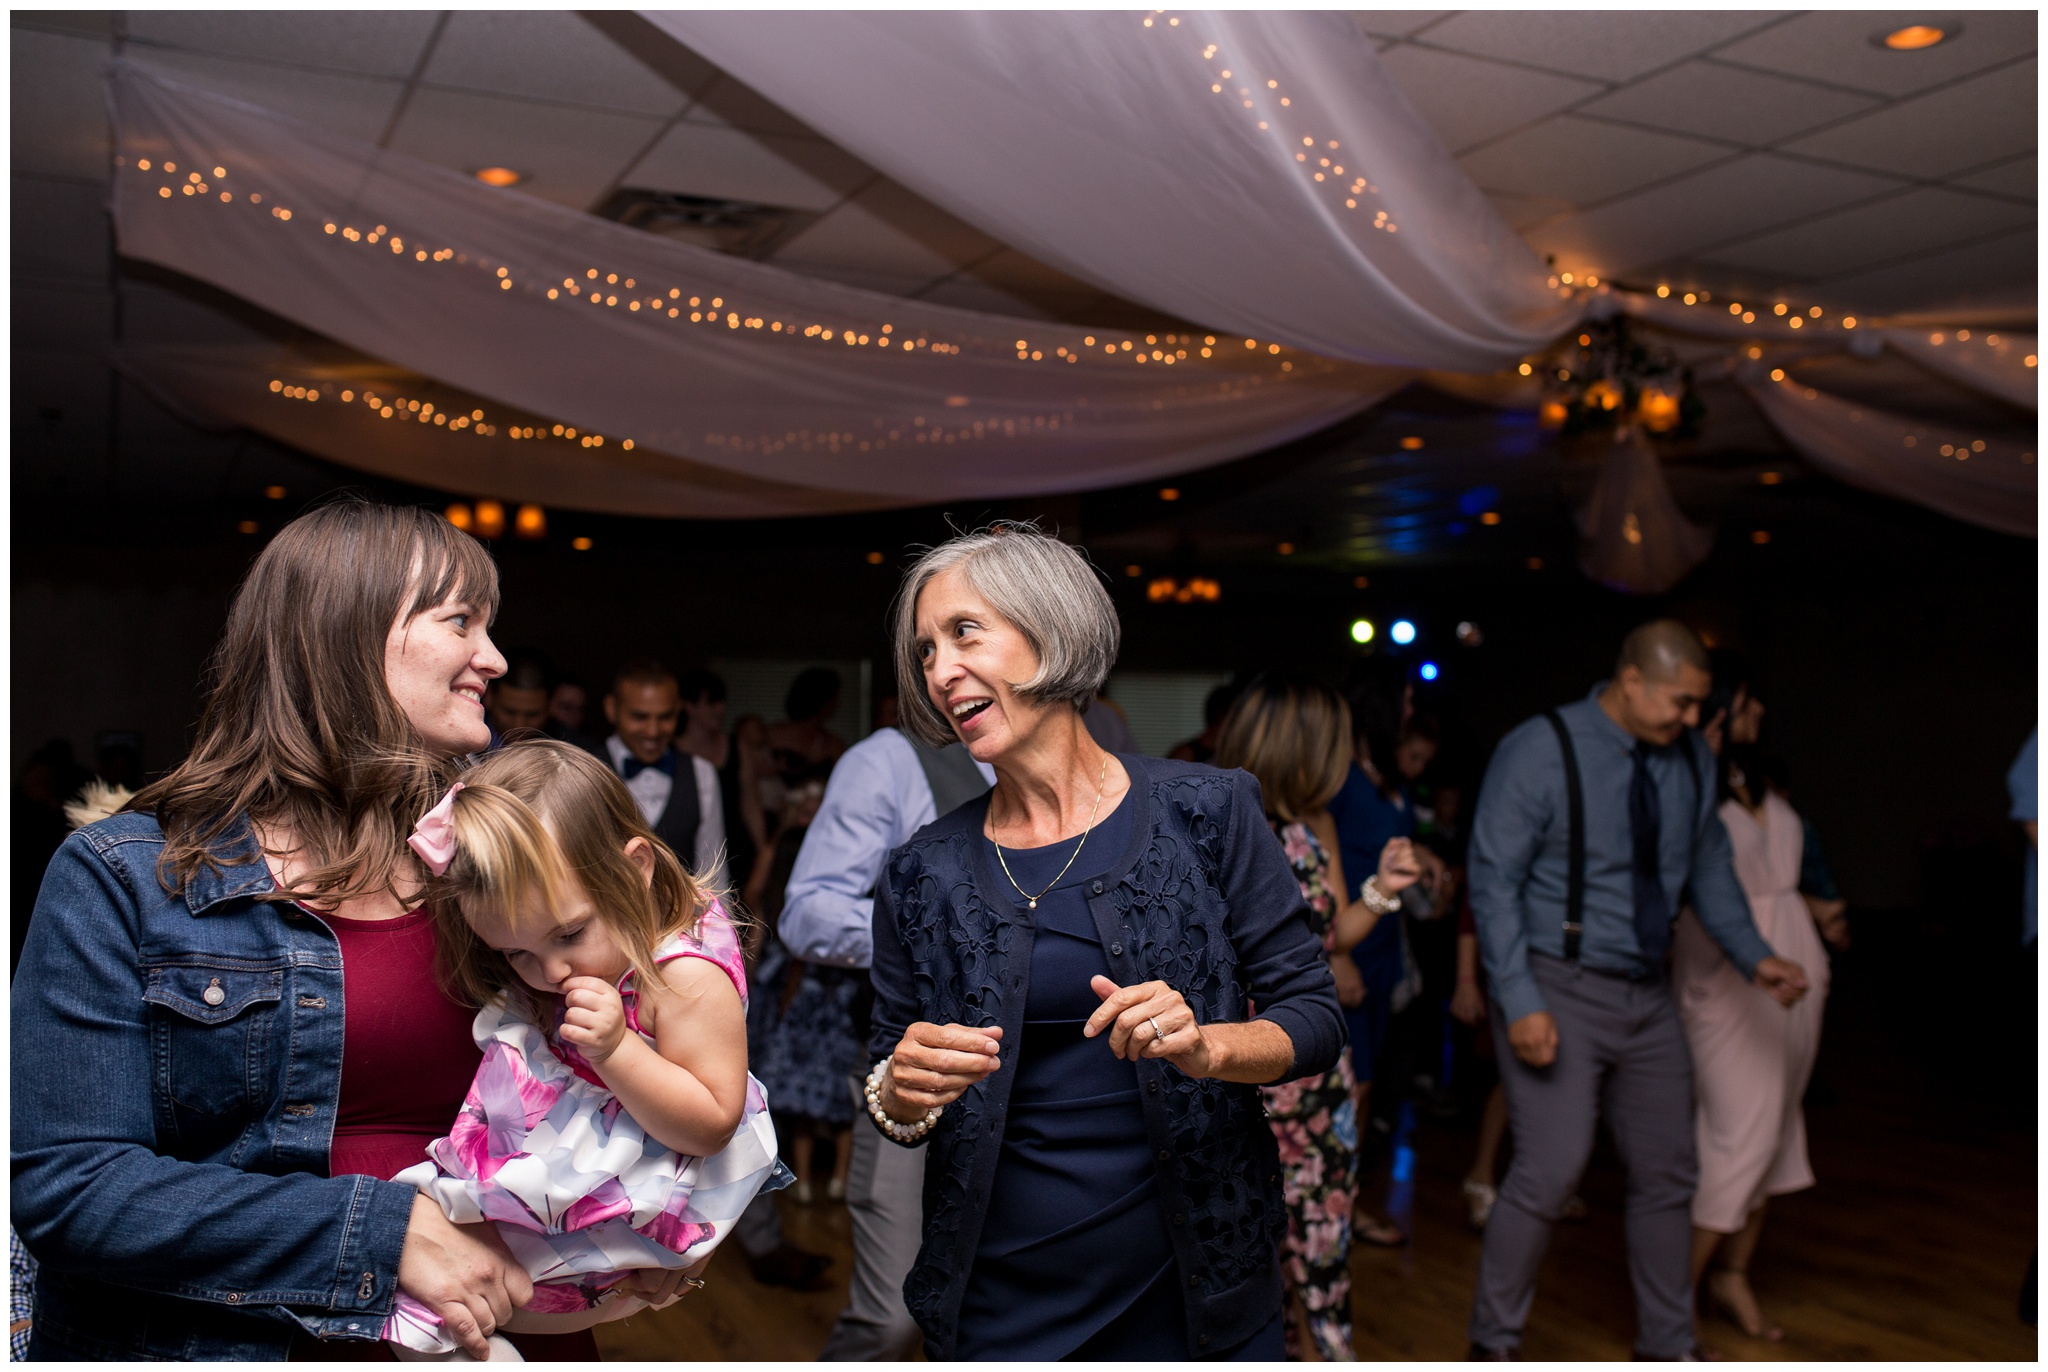 mother of bride dances during wedding reception at Romer's Catering in Greenville Ohio